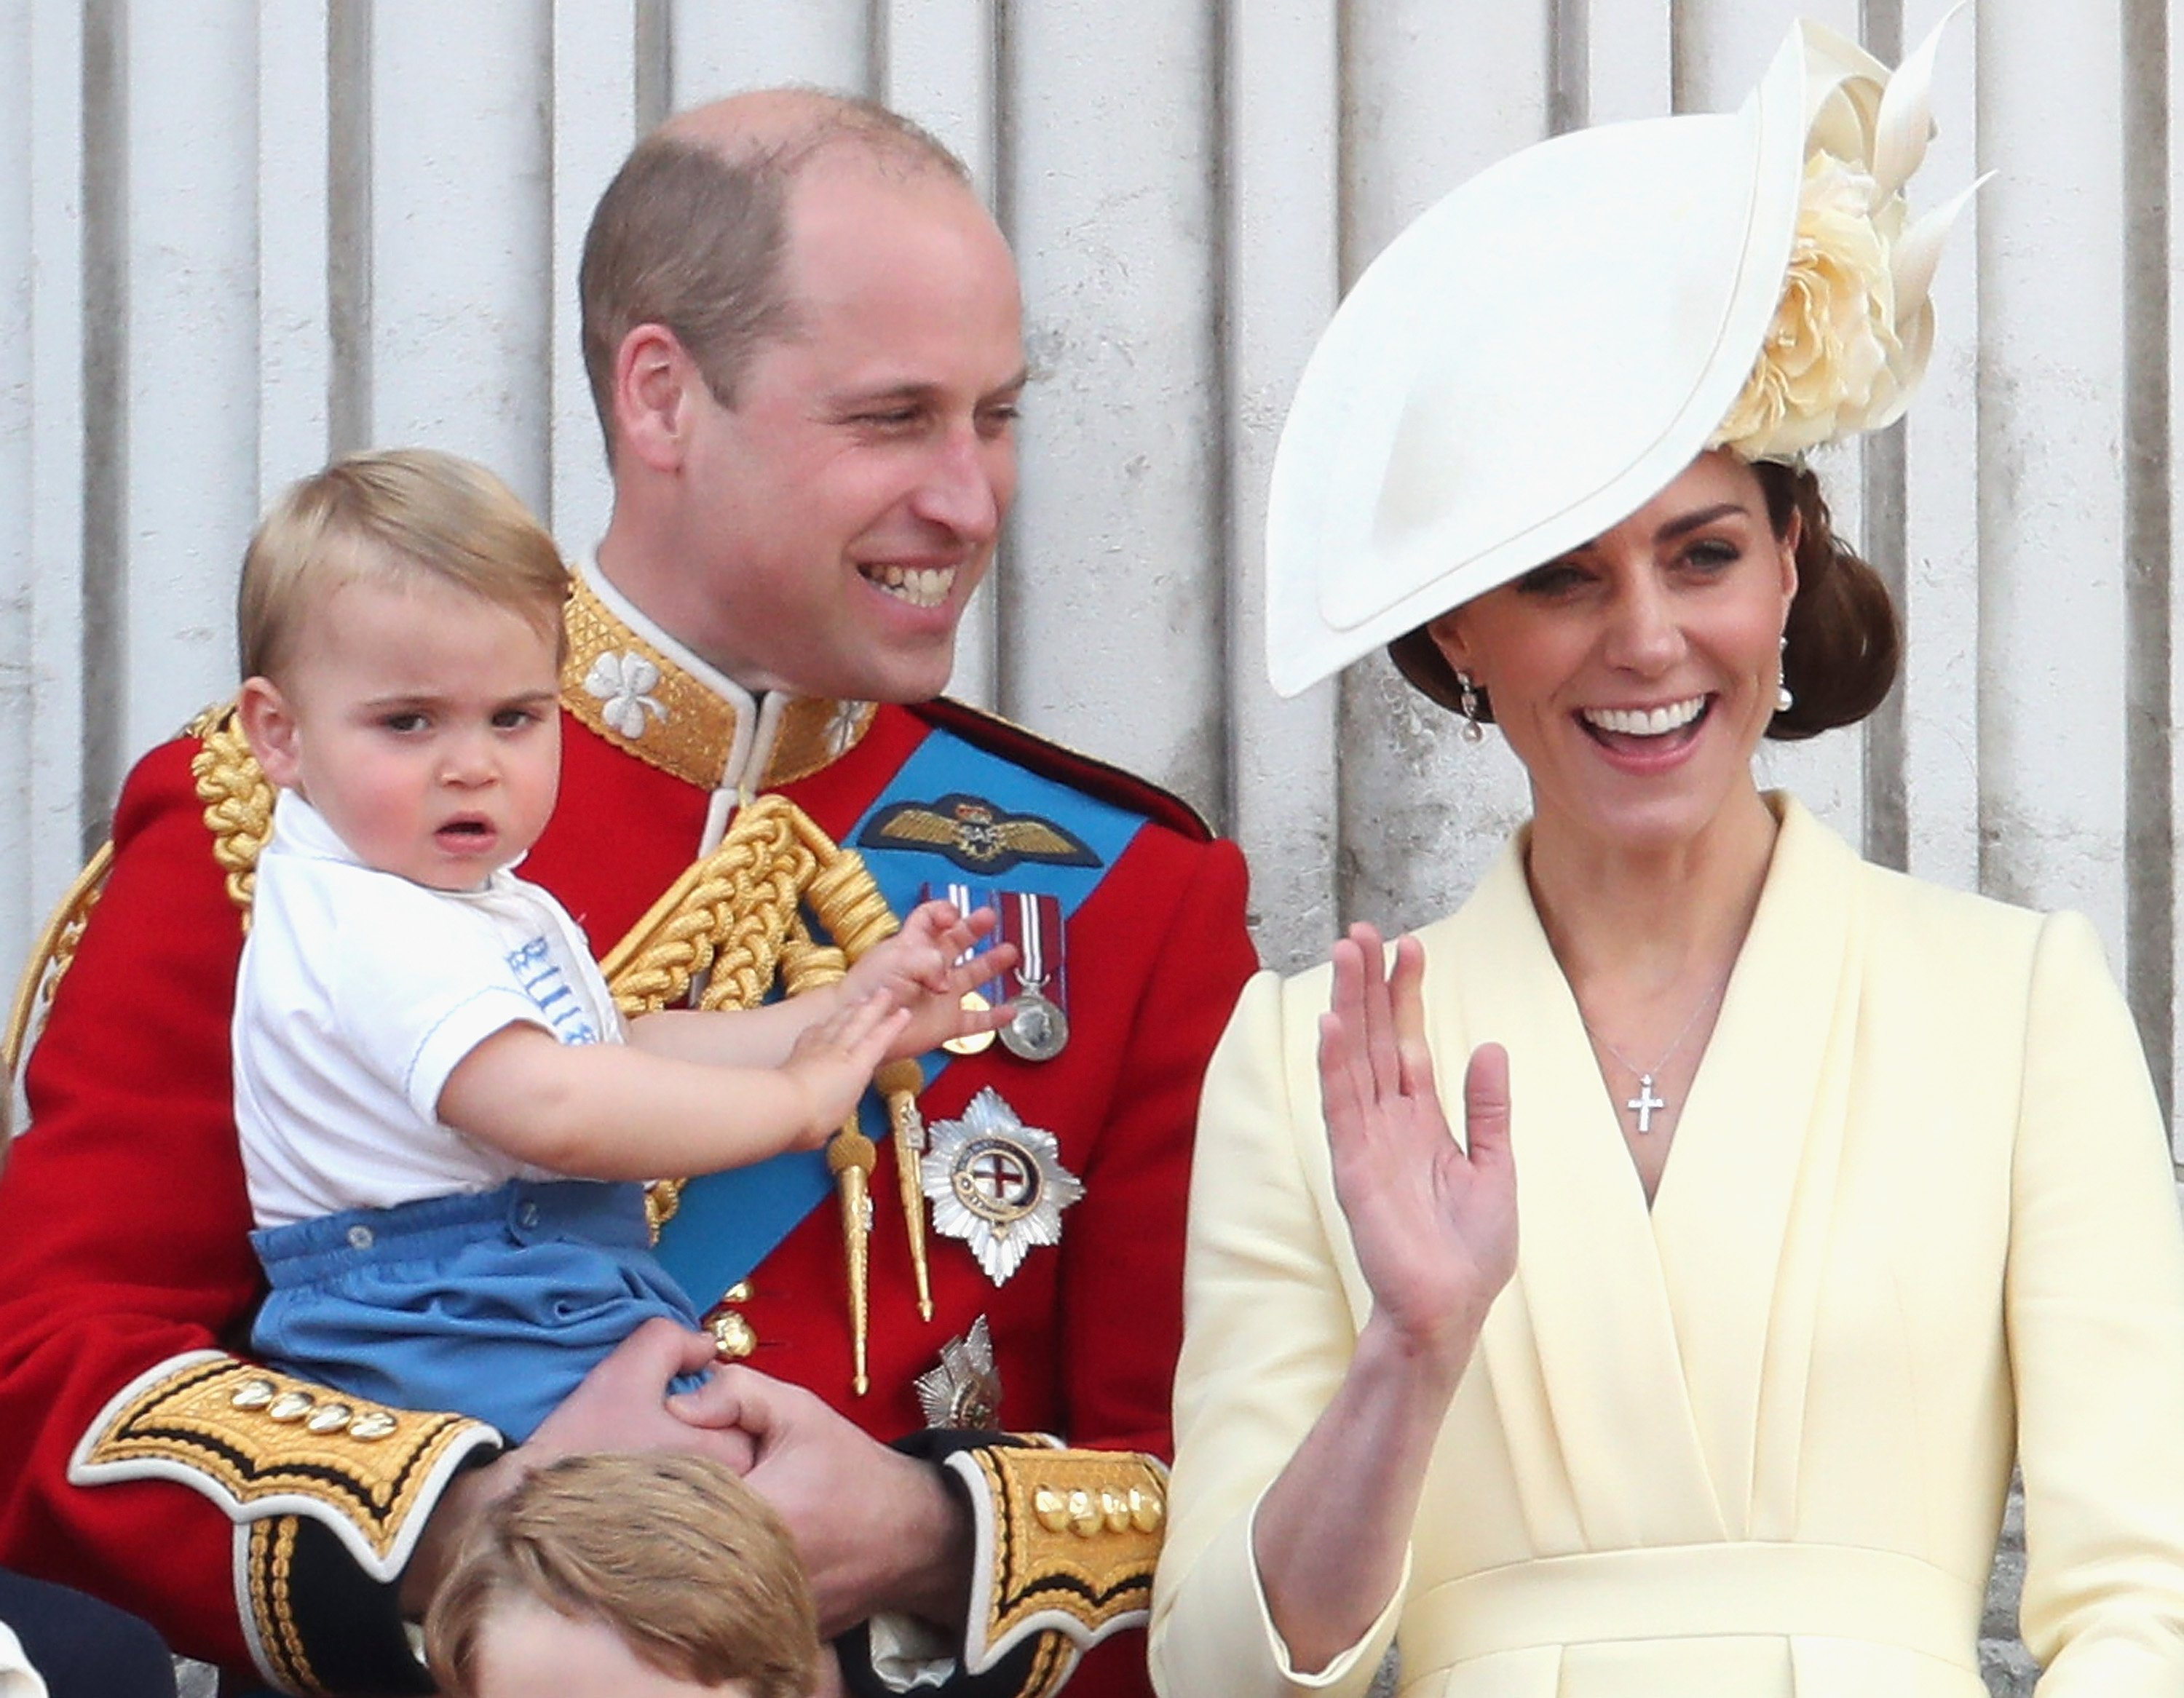 Prince Louis pictured with his father, Prince William and his mother, Kate middleton, at Trooping The Colour, the Queen's annual birthday parade, 2019, London, England.   Photo: Getty Images